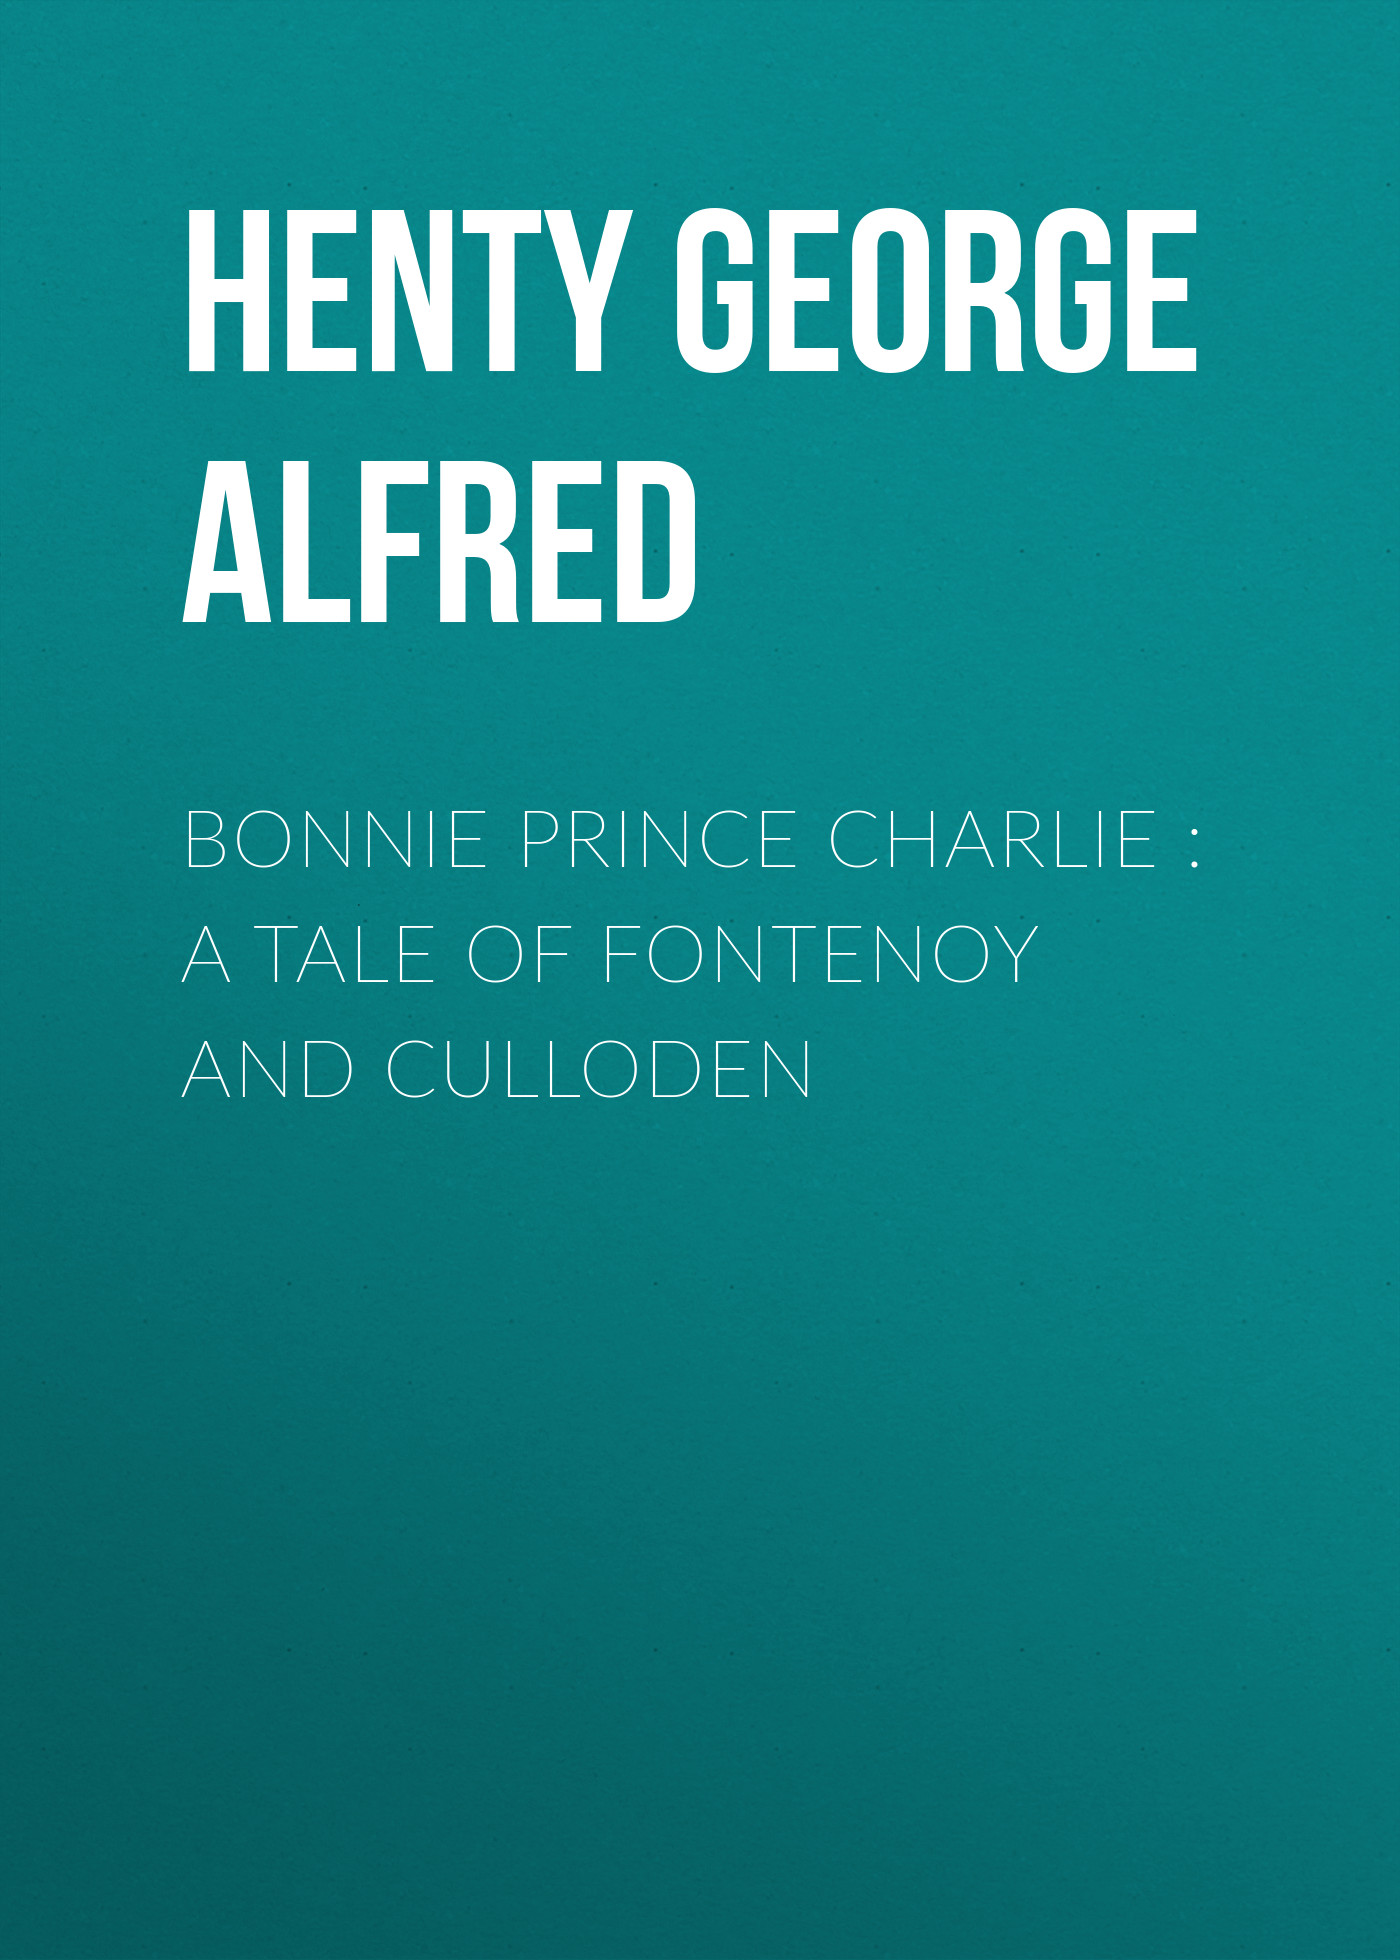 Henty George Alfred Bonnie Prince Charlie : a Tale of Fontenoy and Culloden russell peters prince george